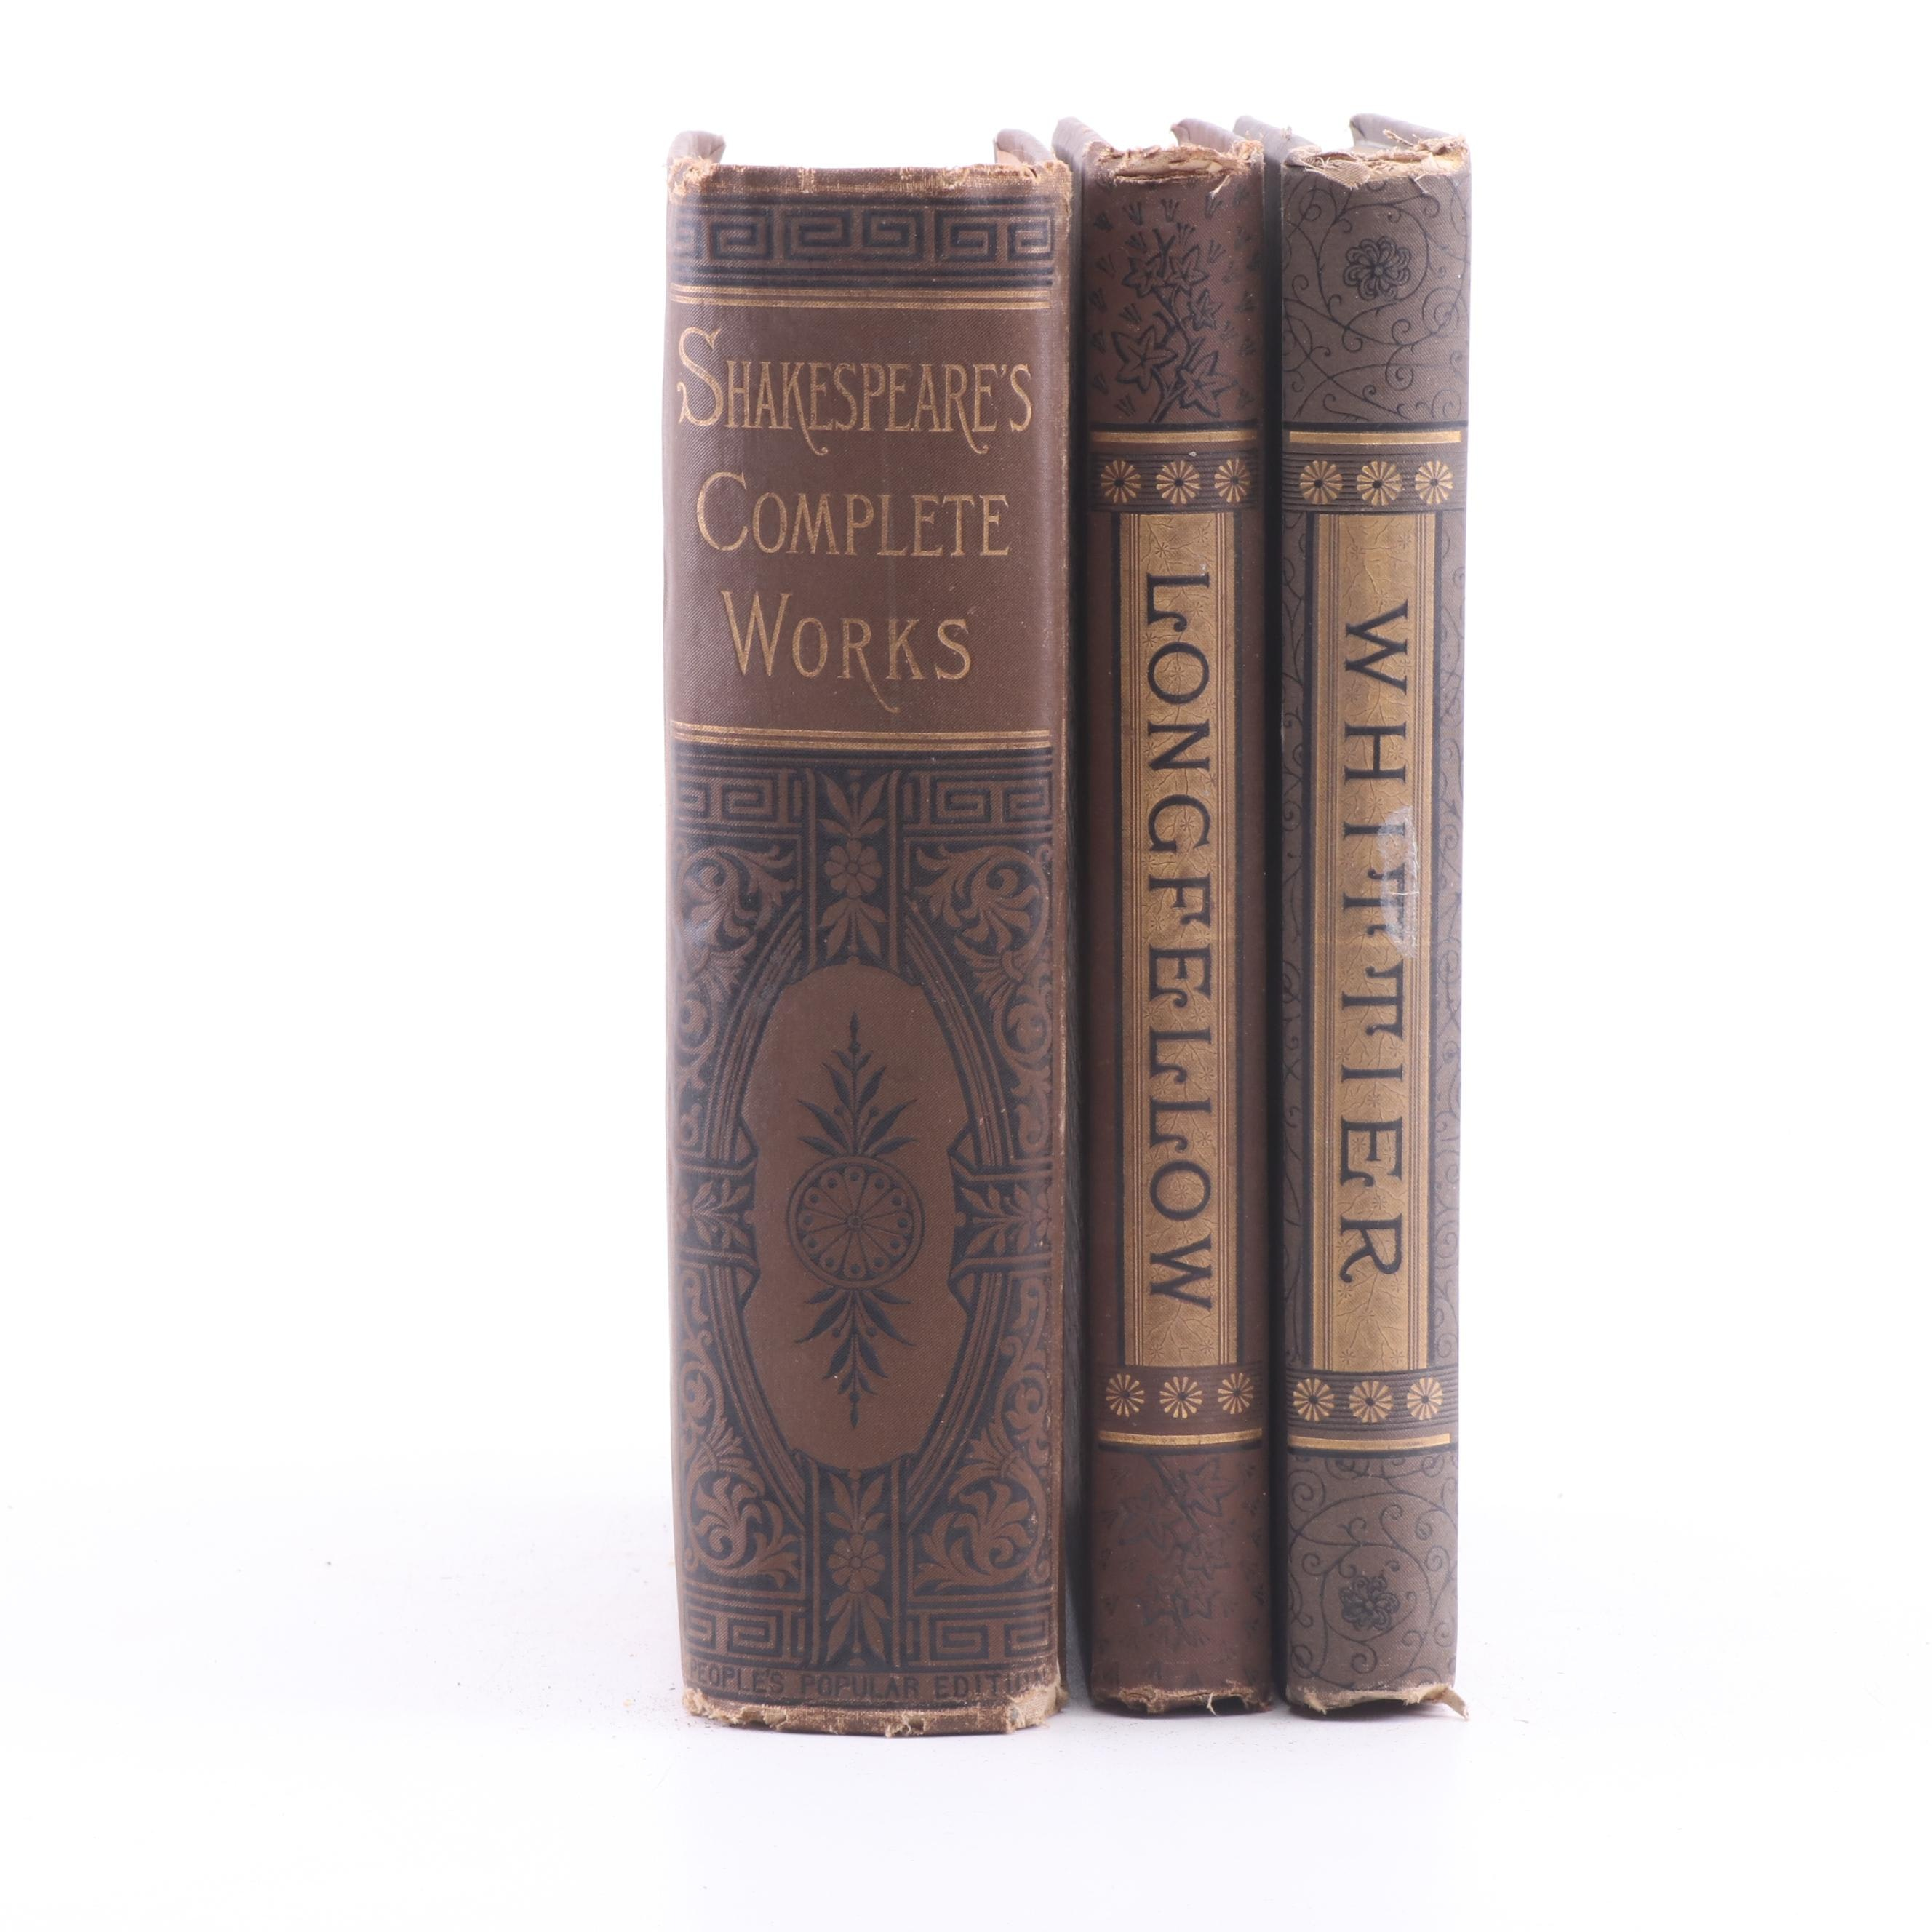 Works of Shakespeare, Whittier and Longfellow, Late 19th Century